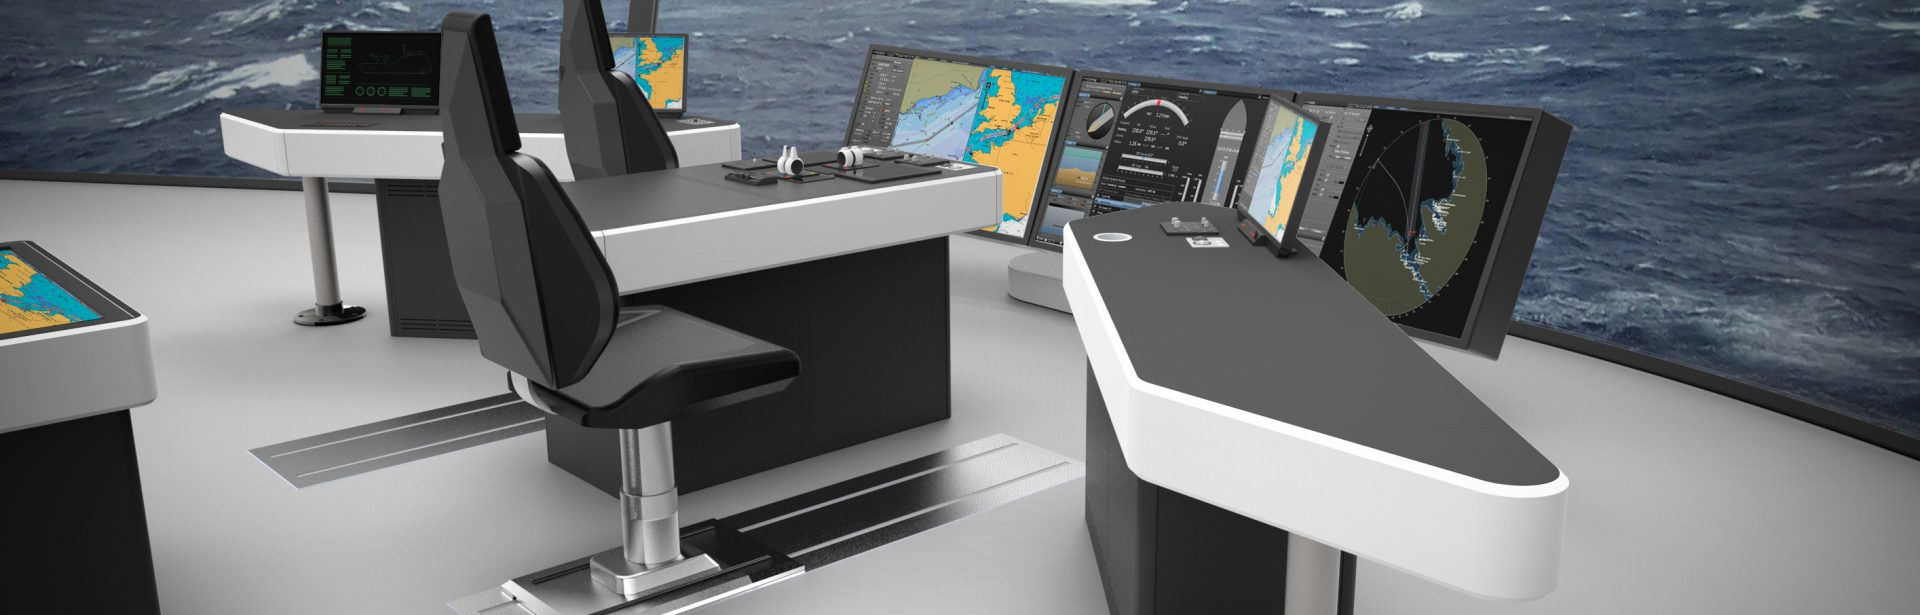 Elpro-Maritime-Products-Engineering-Project-Management